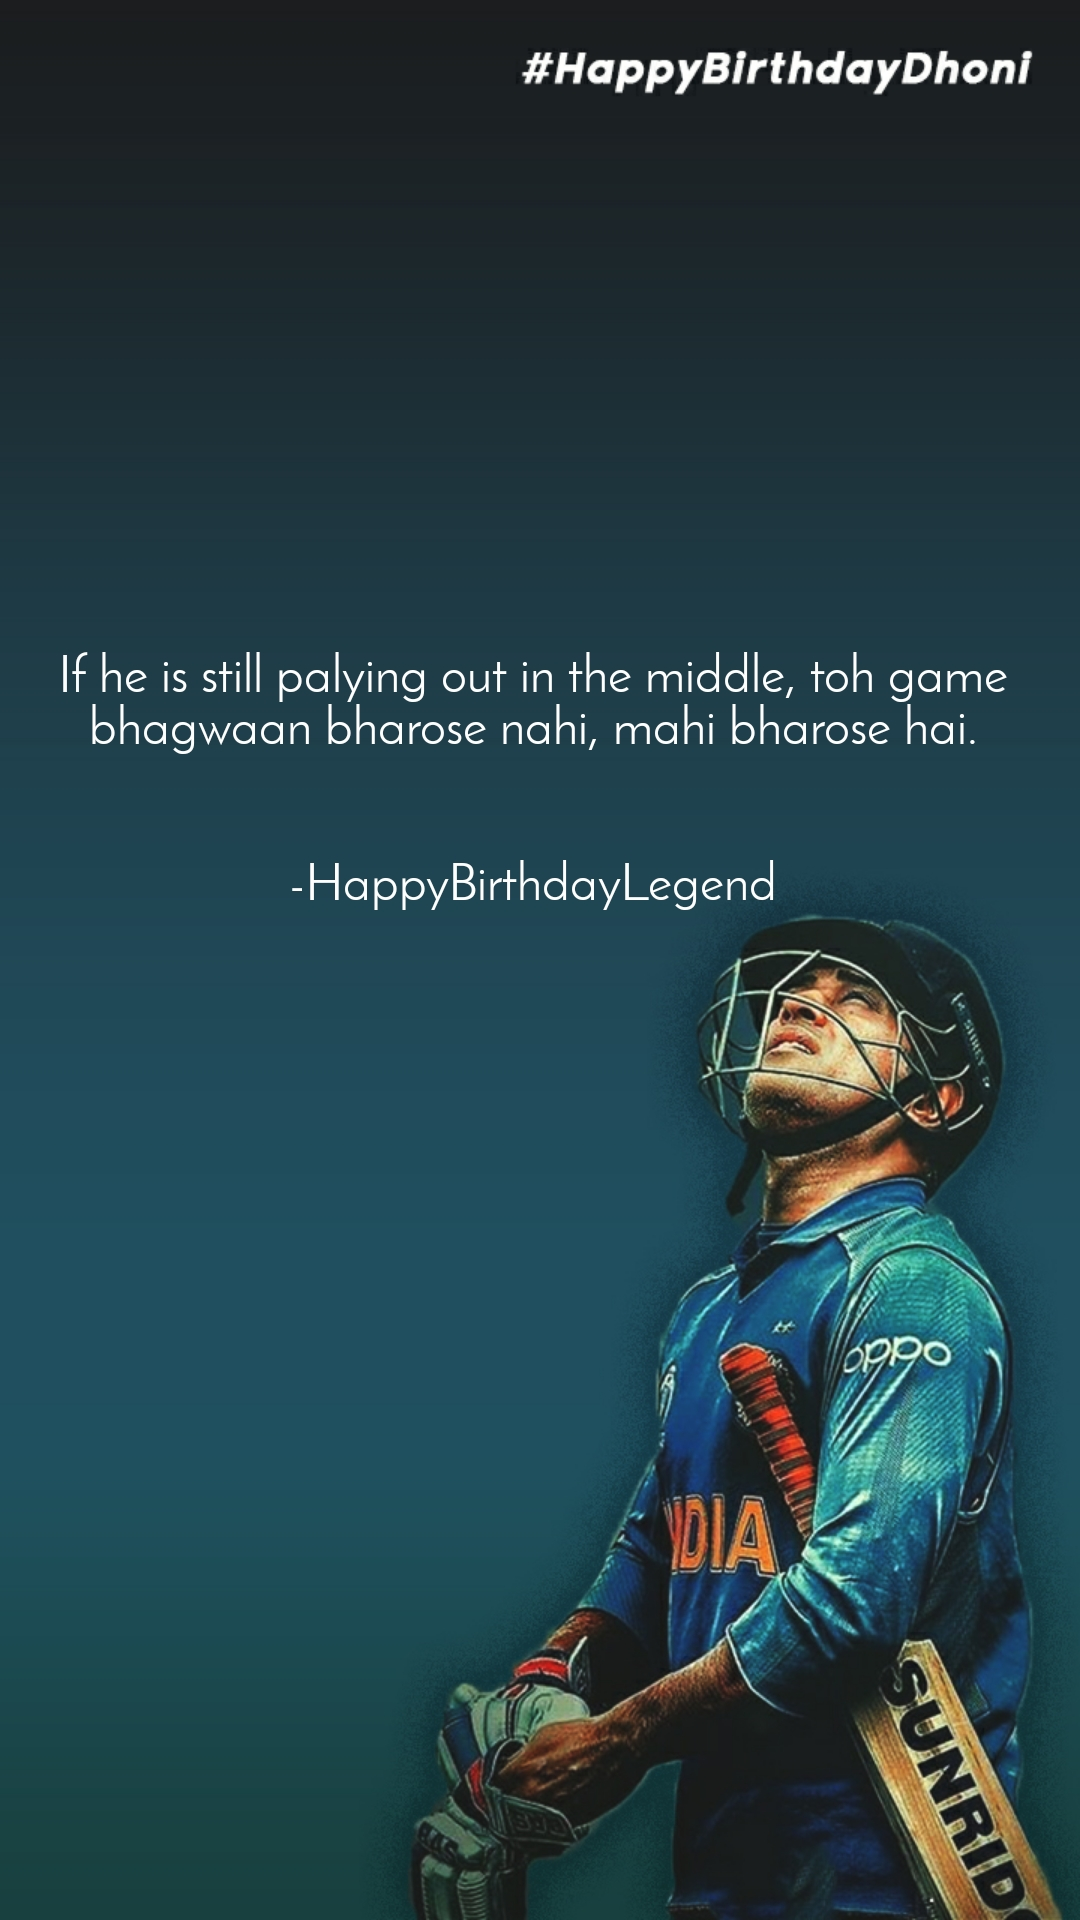 If he is still palying out in the middle, toh game bhagwaan bharose nahi, mahi bharose hai.   -HappyBirthdayLegend